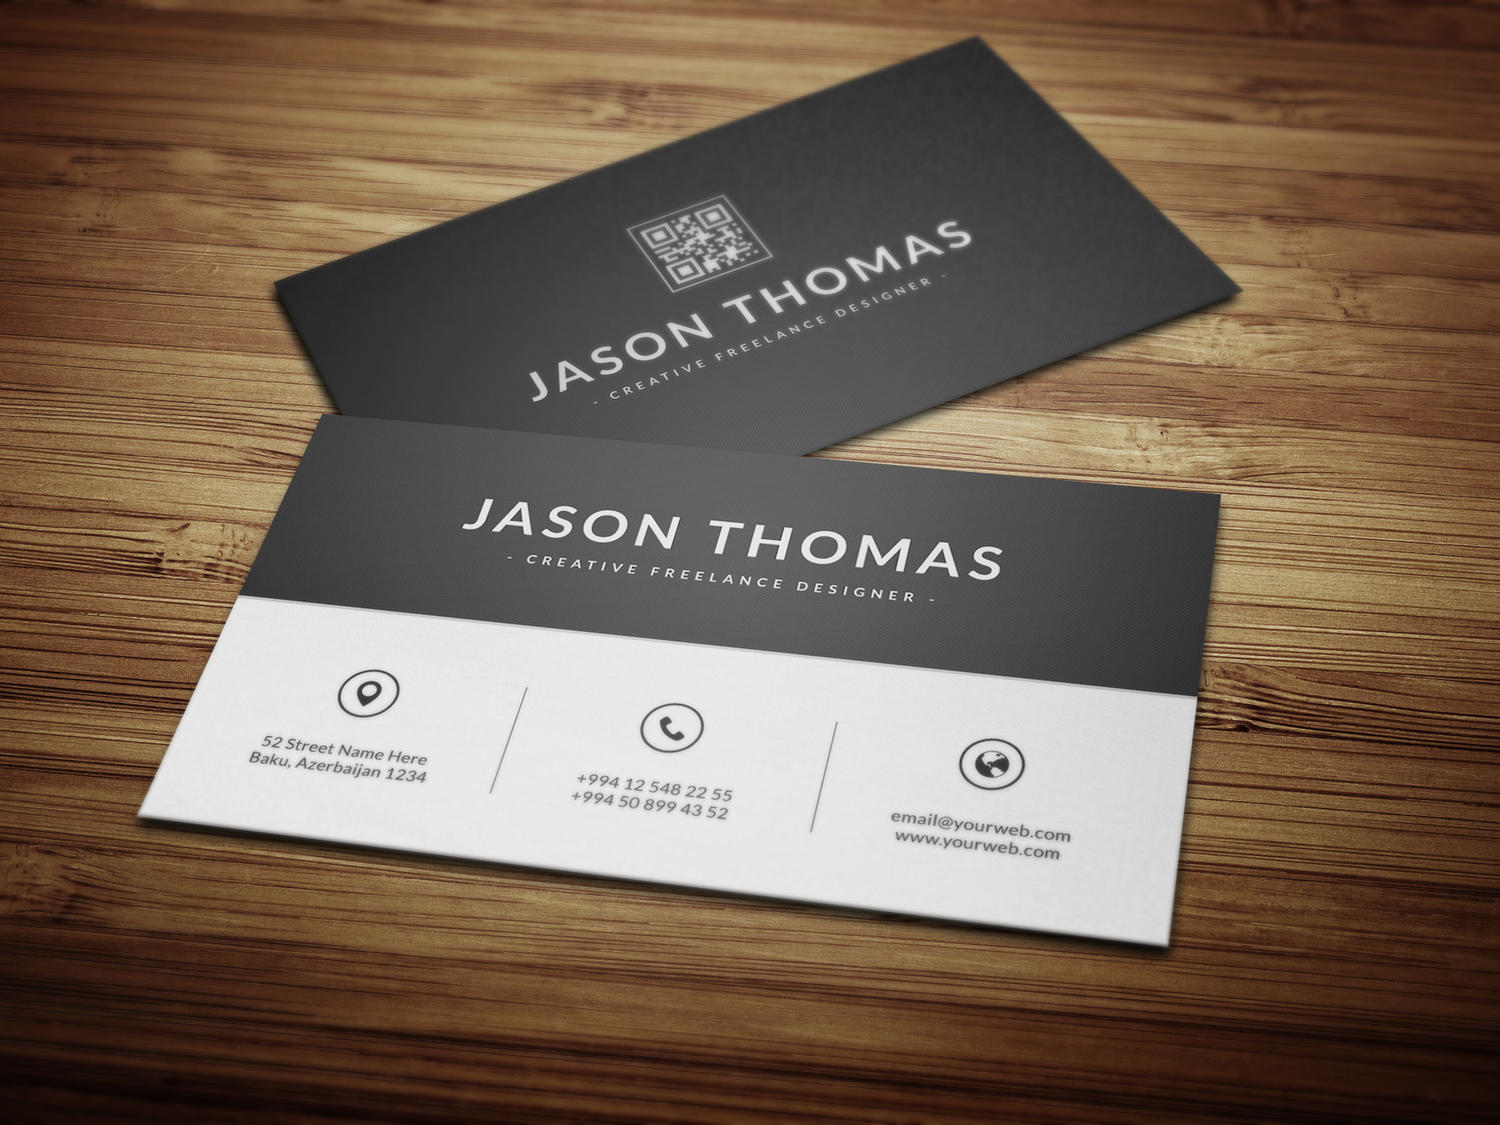 design business card,  letter head,  and stationery items